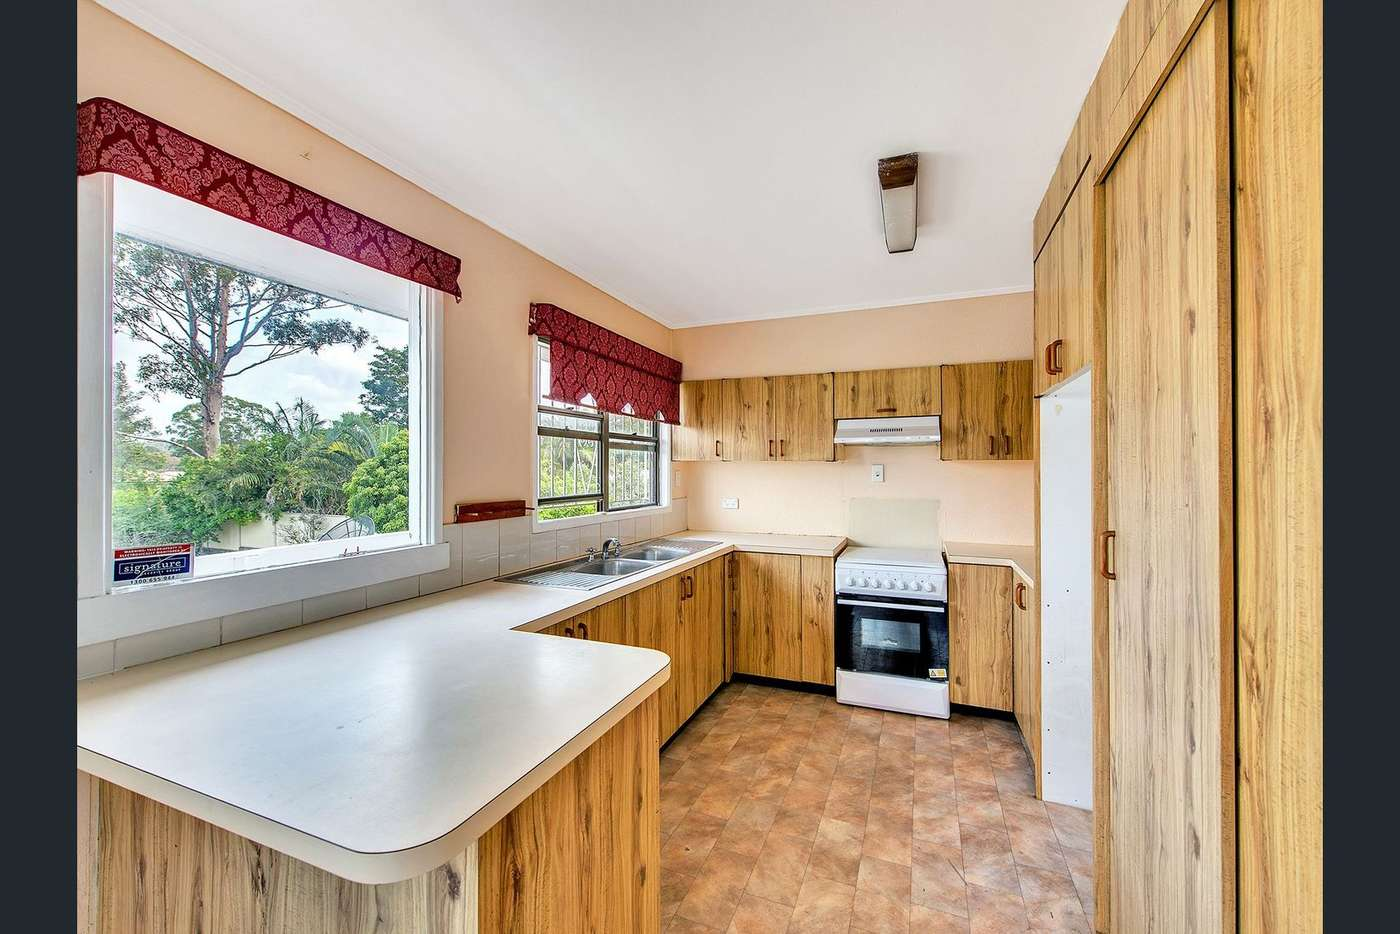 Seventh view of Homely house listing, 130 Lister Street, Sunnybank QLD 4109